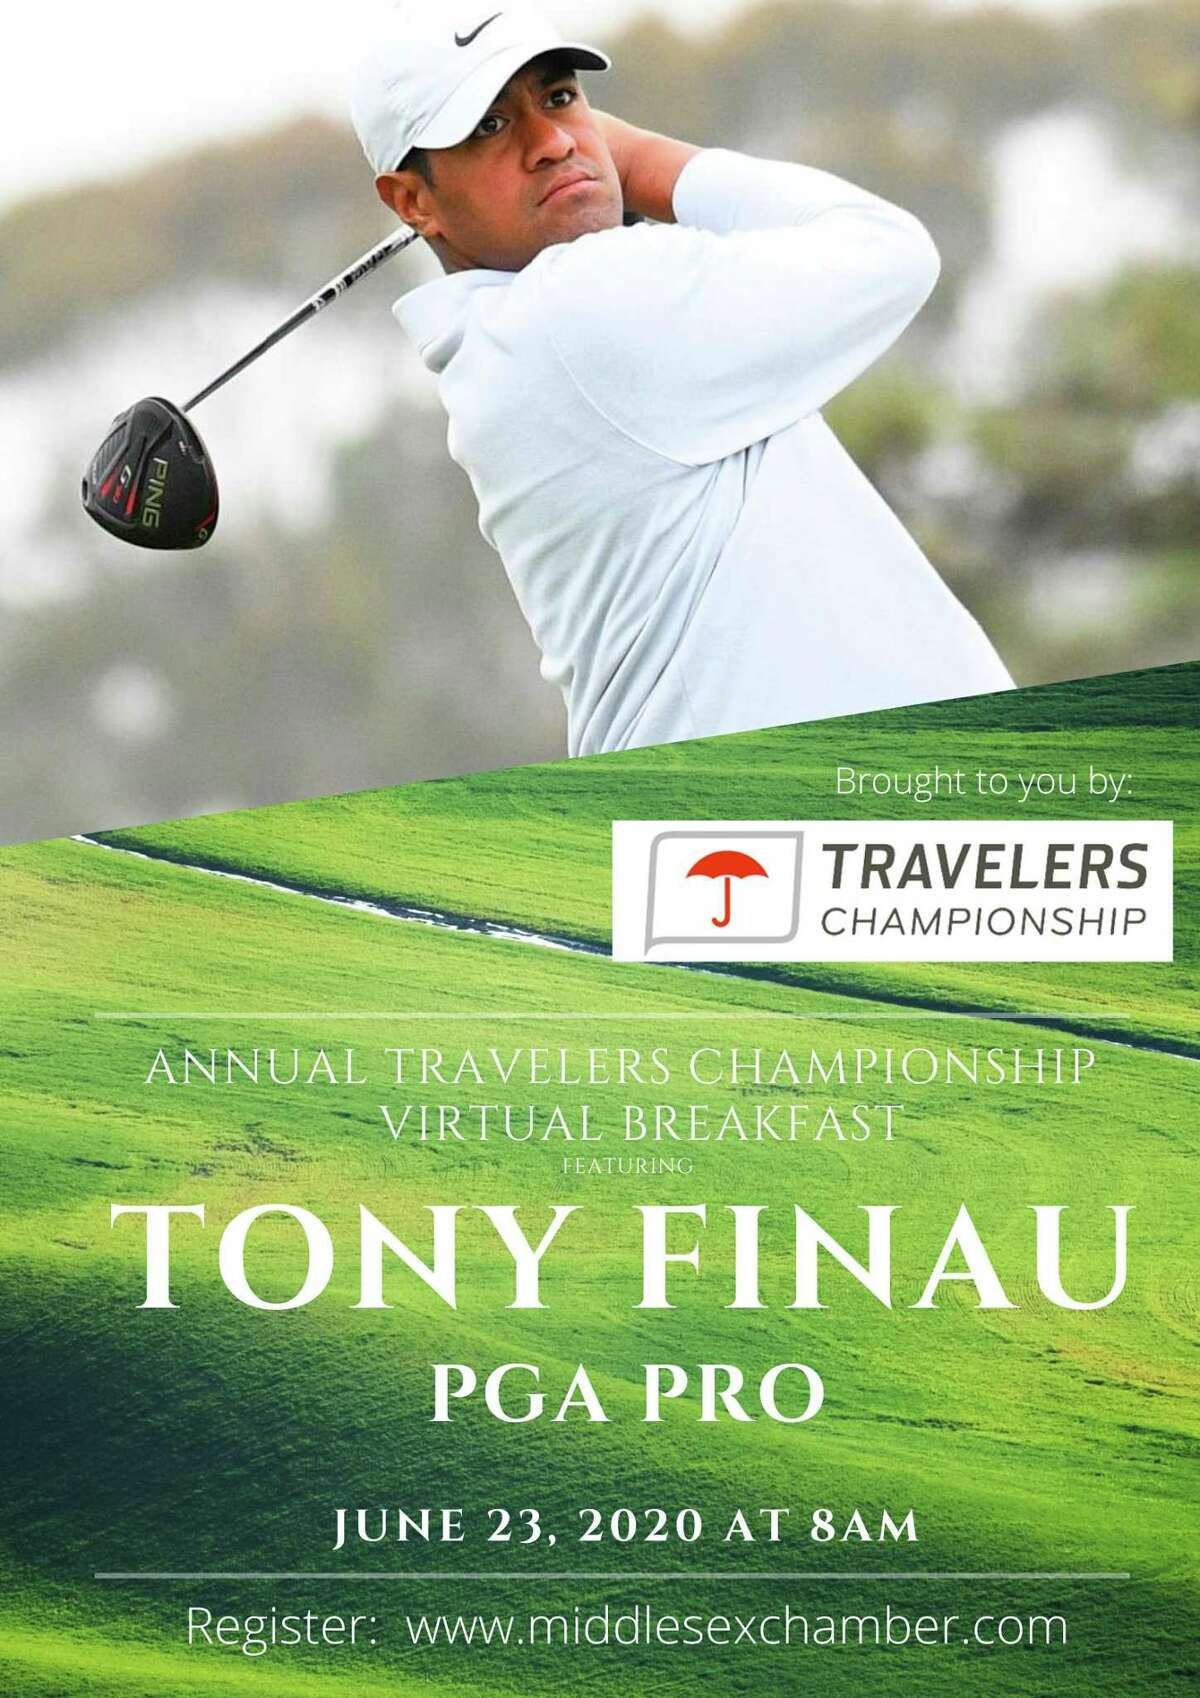 PGA professional Tony Finau is the guest for the Travelers Championship virtual breakfast scheduled for June 23.